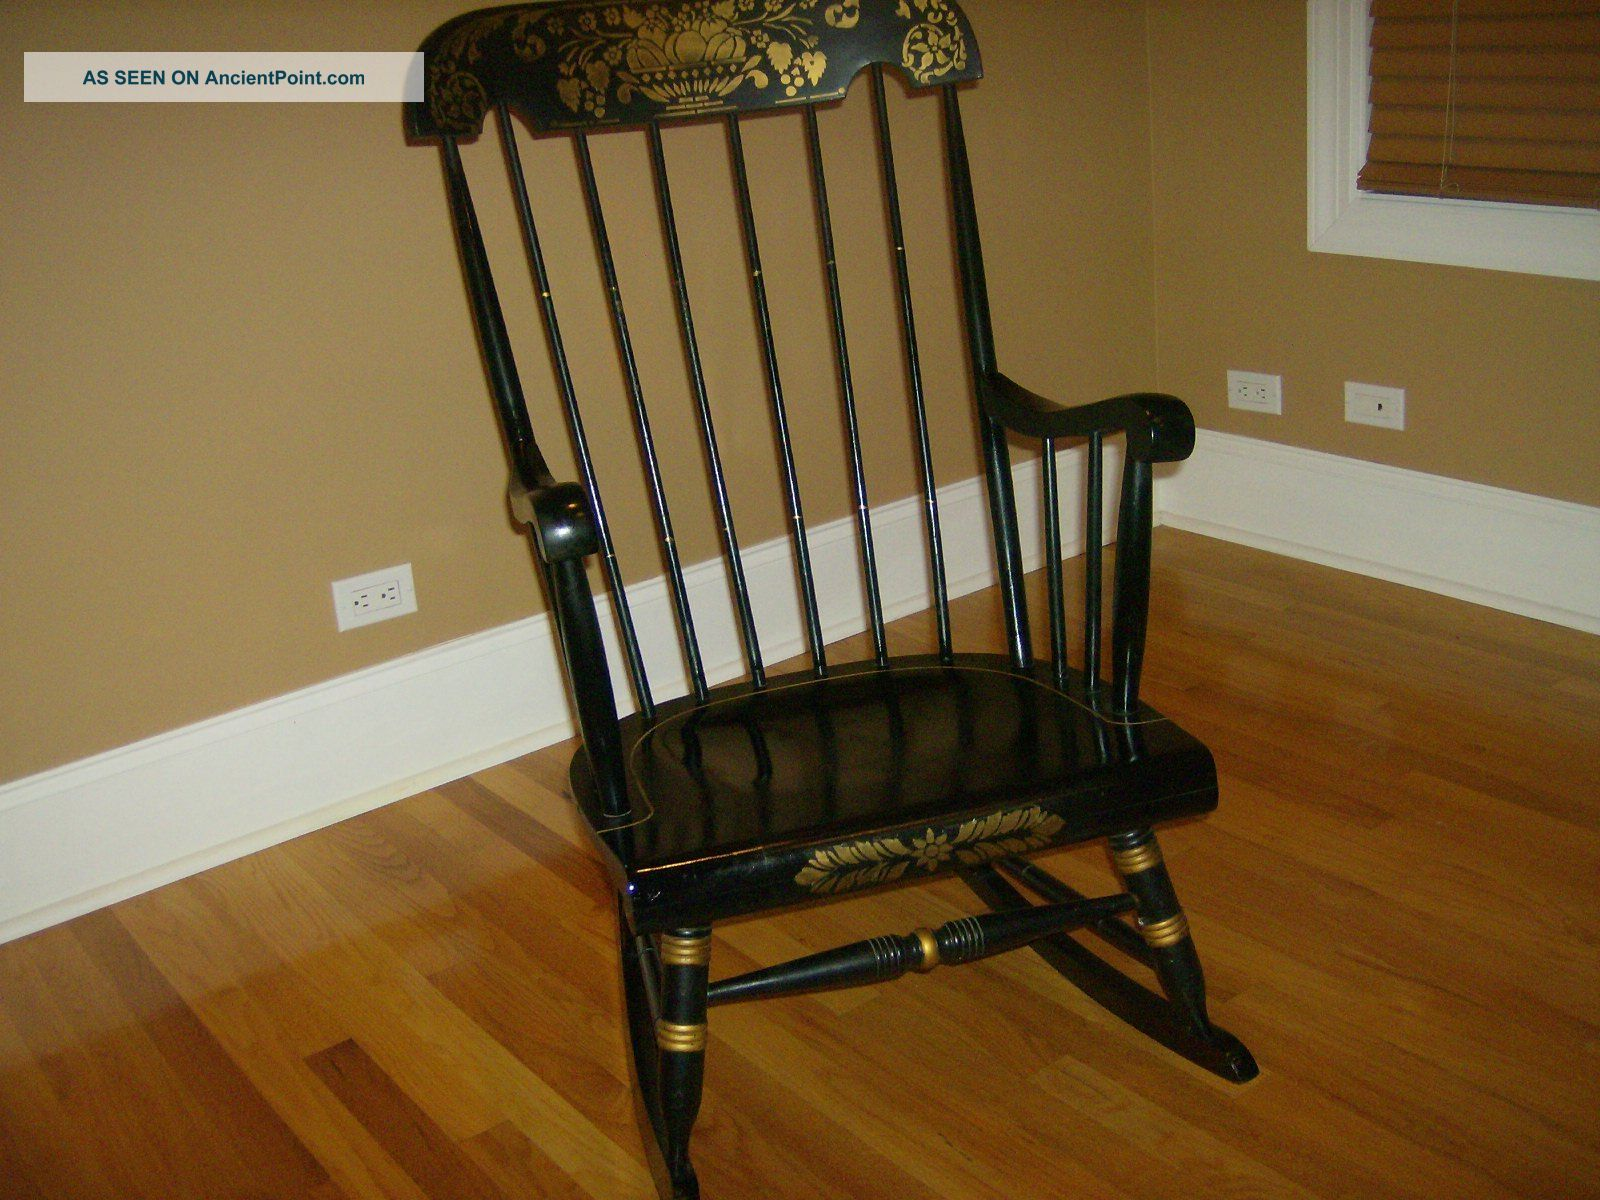 Old Rocking Chairs ~ Antique vintage chairs interior decorating accessories